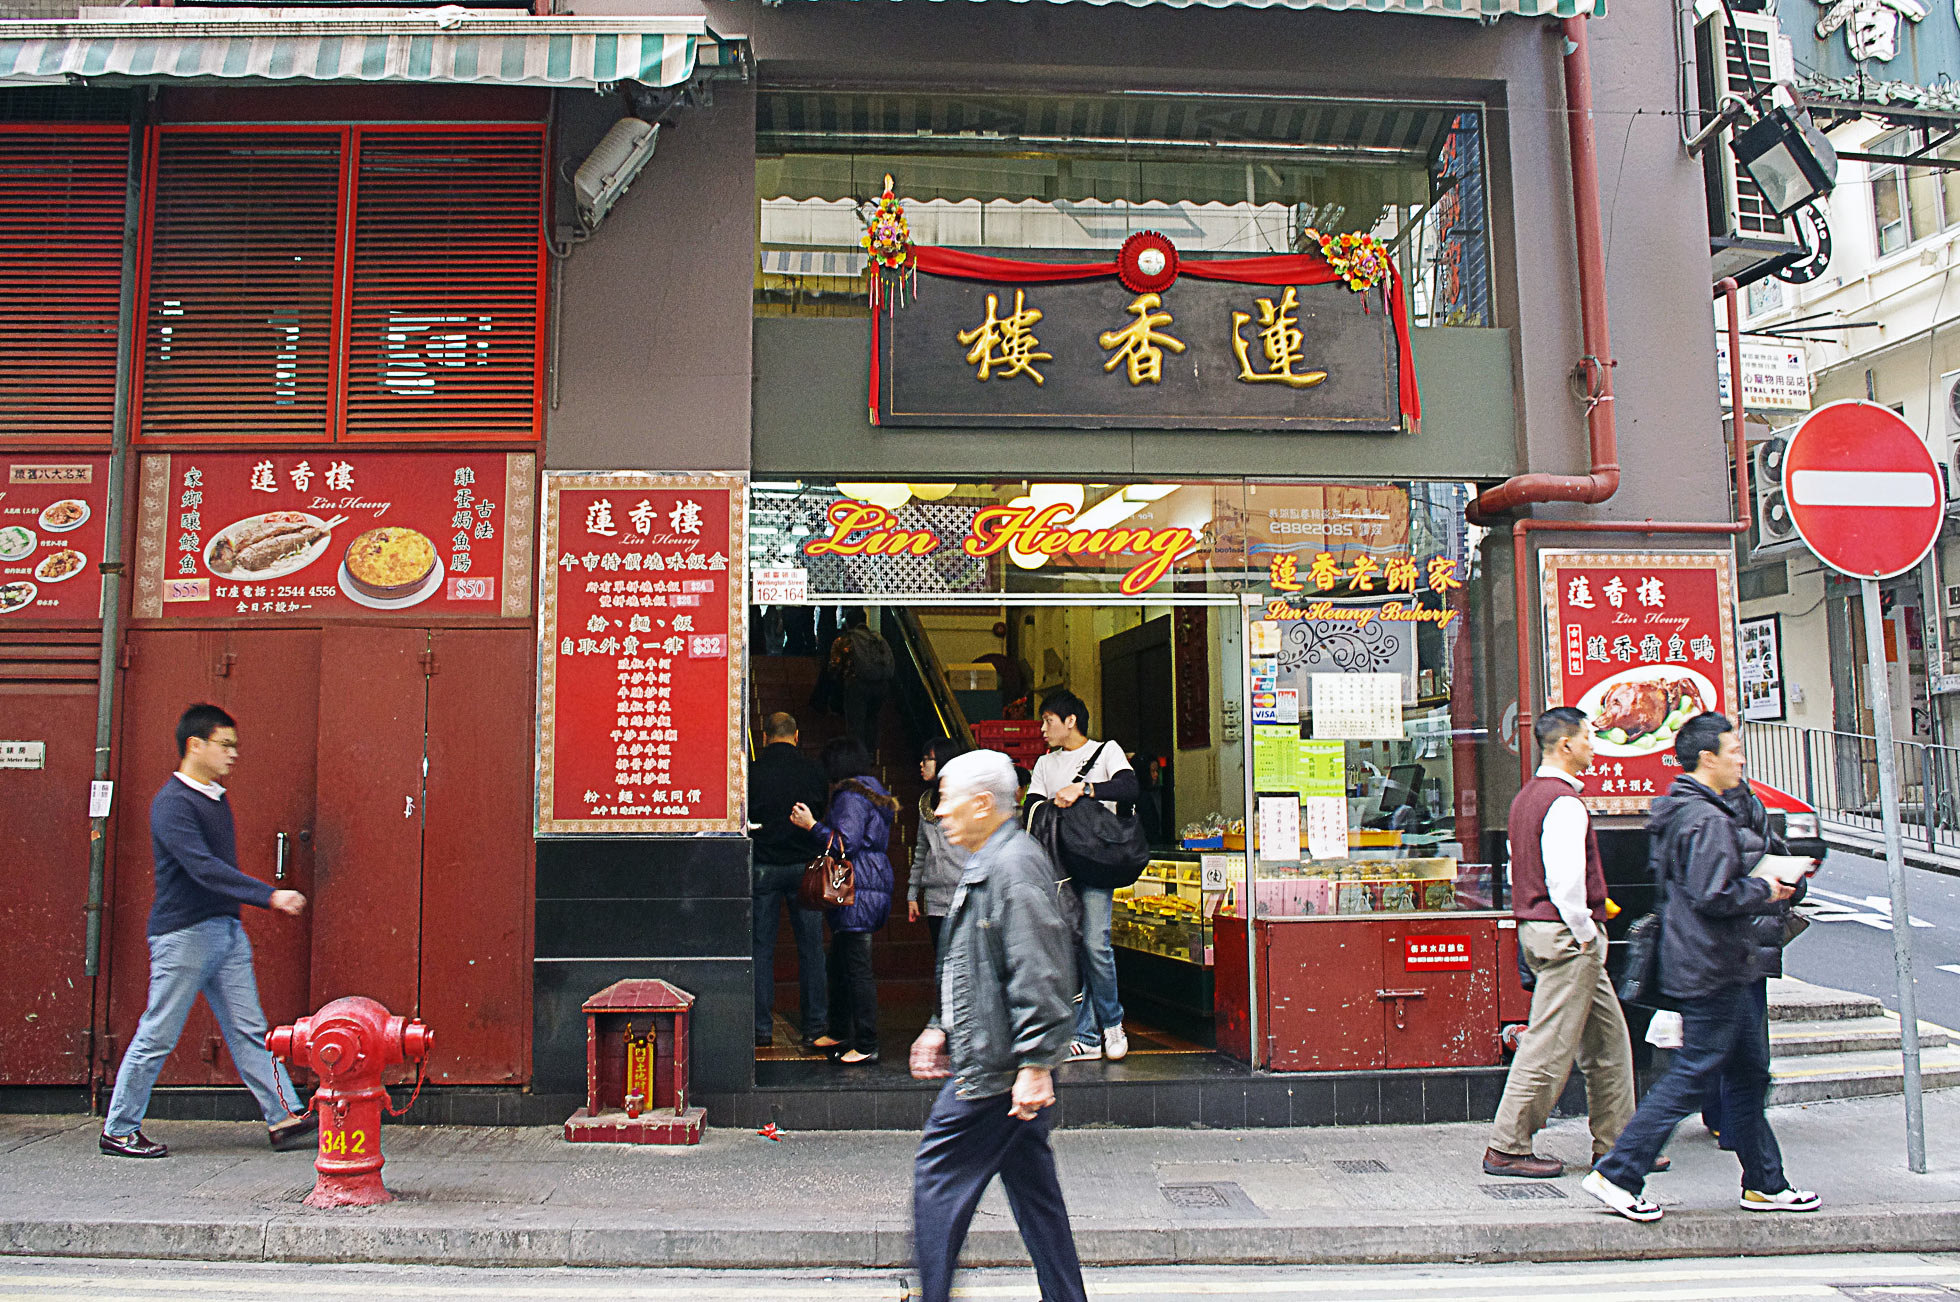 Lin Heung Tea House in Hong Kong. Photo by alphacityguides.